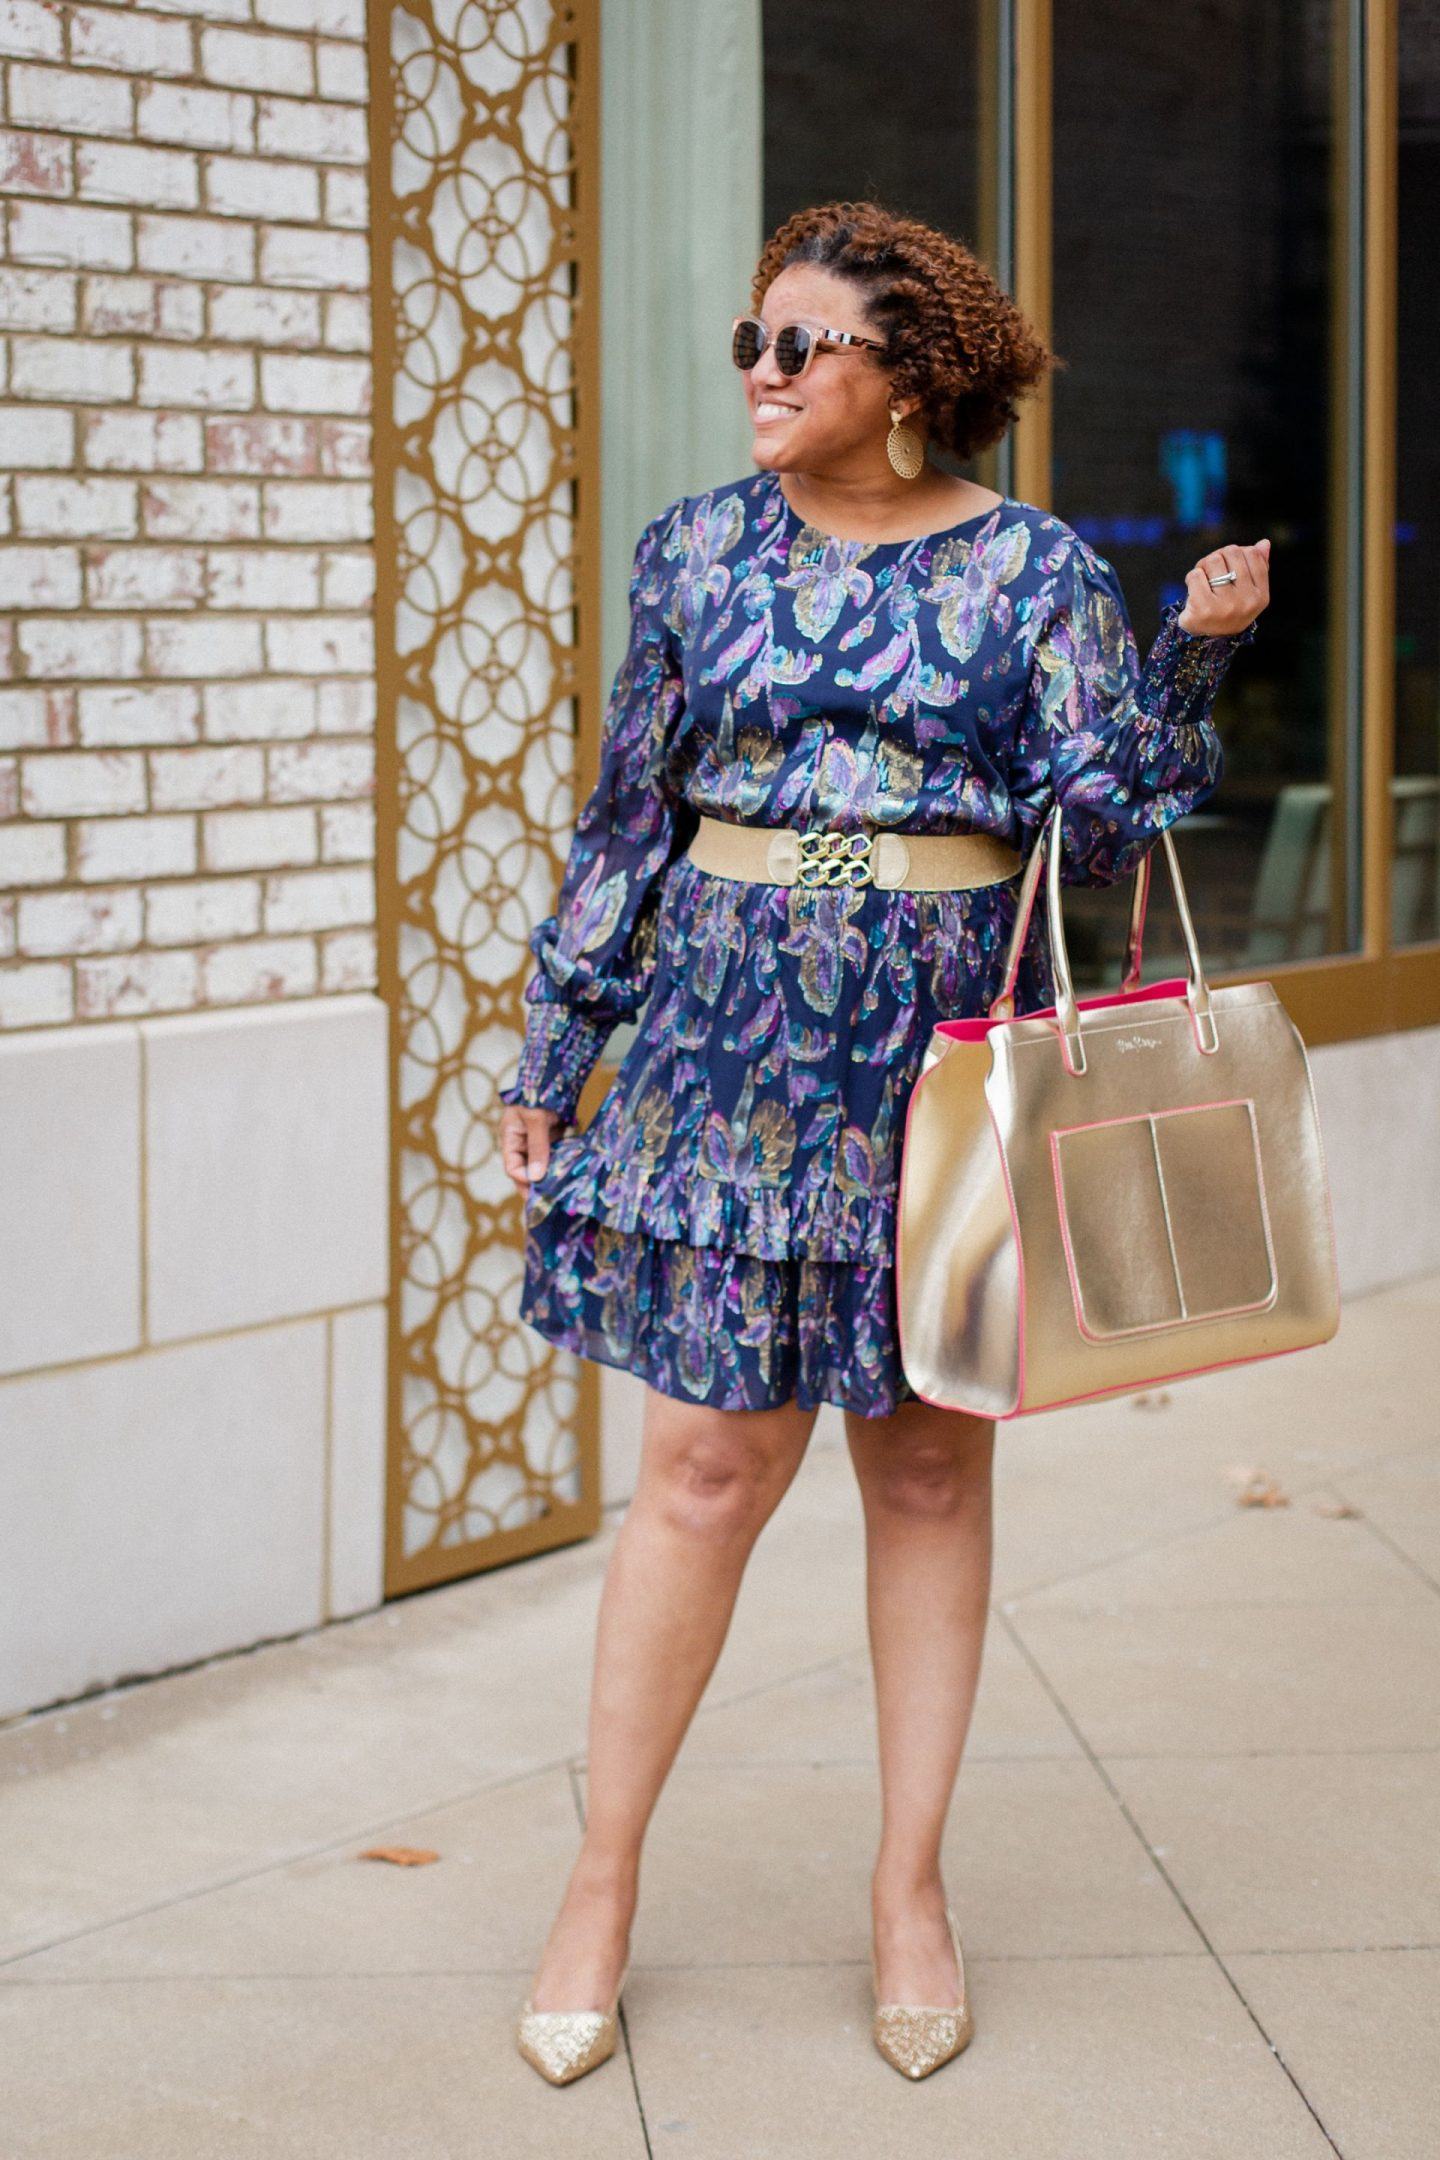 Lilly Pulitzer Sale by popular Kentucky fashion blog, Really Rynetta: image of a woman wearing a Lilly pulitzer ruffle hem dress, gold glitter heels and holding a gold Lilly Pulitzer tote bag.